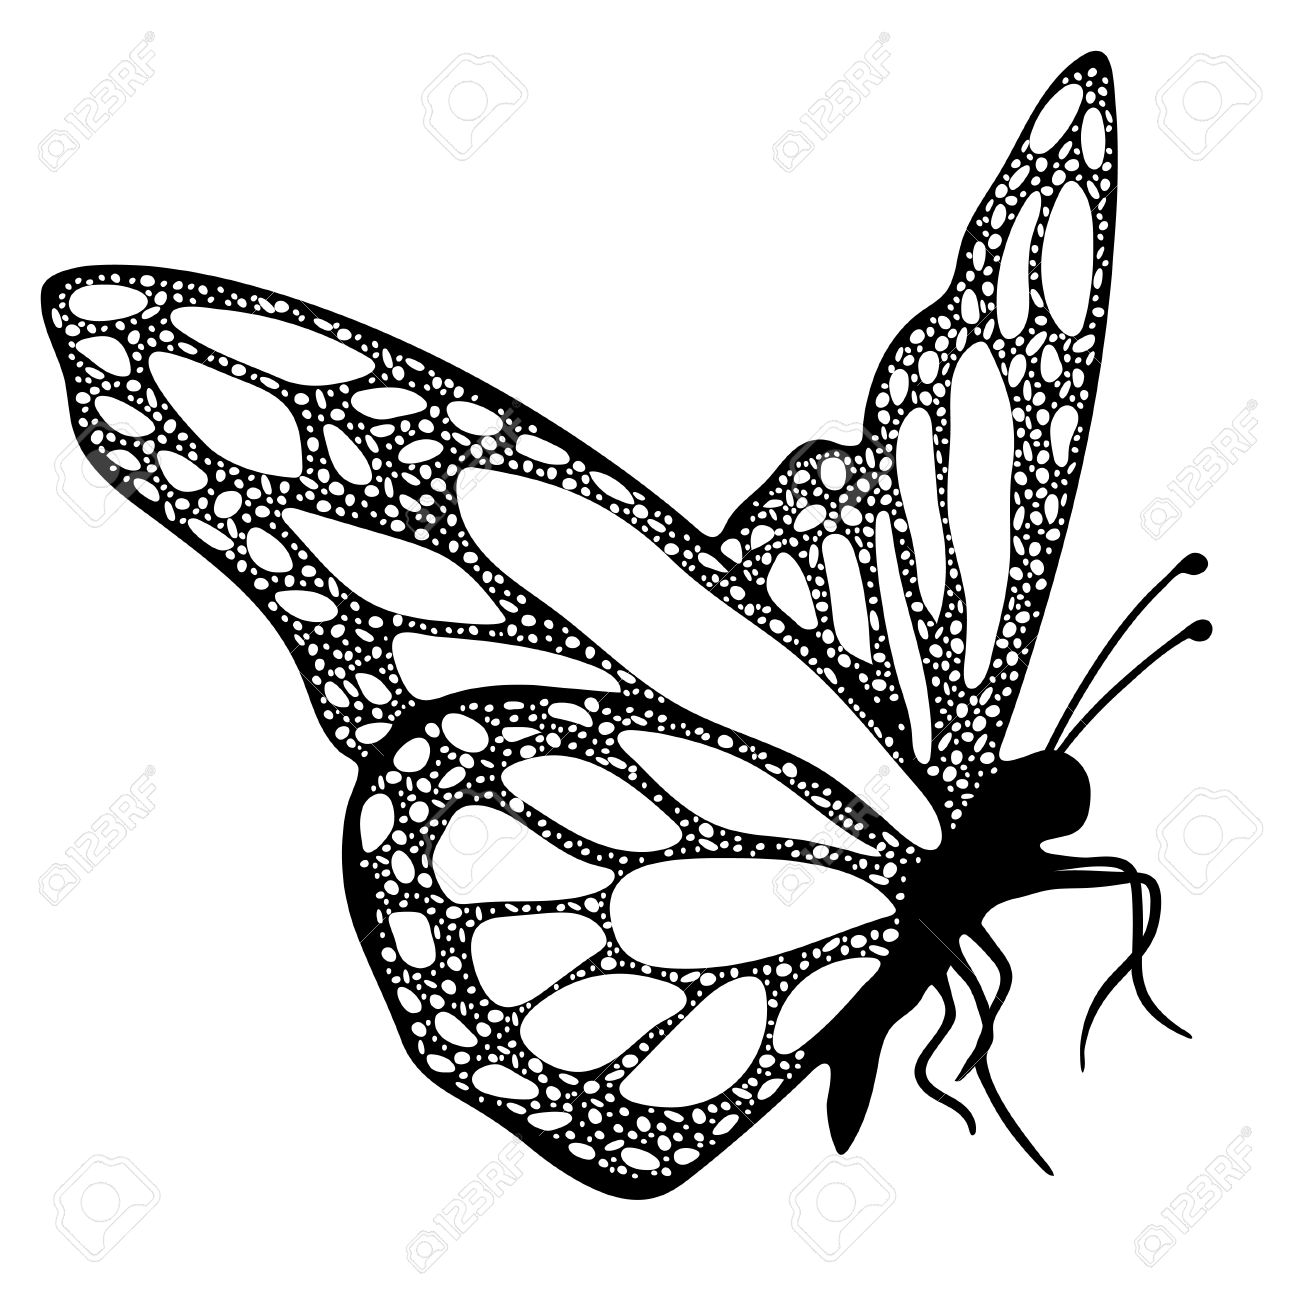 1300x1300 Butterfly, Monochrome, Coloring Book, Black And White Illustration